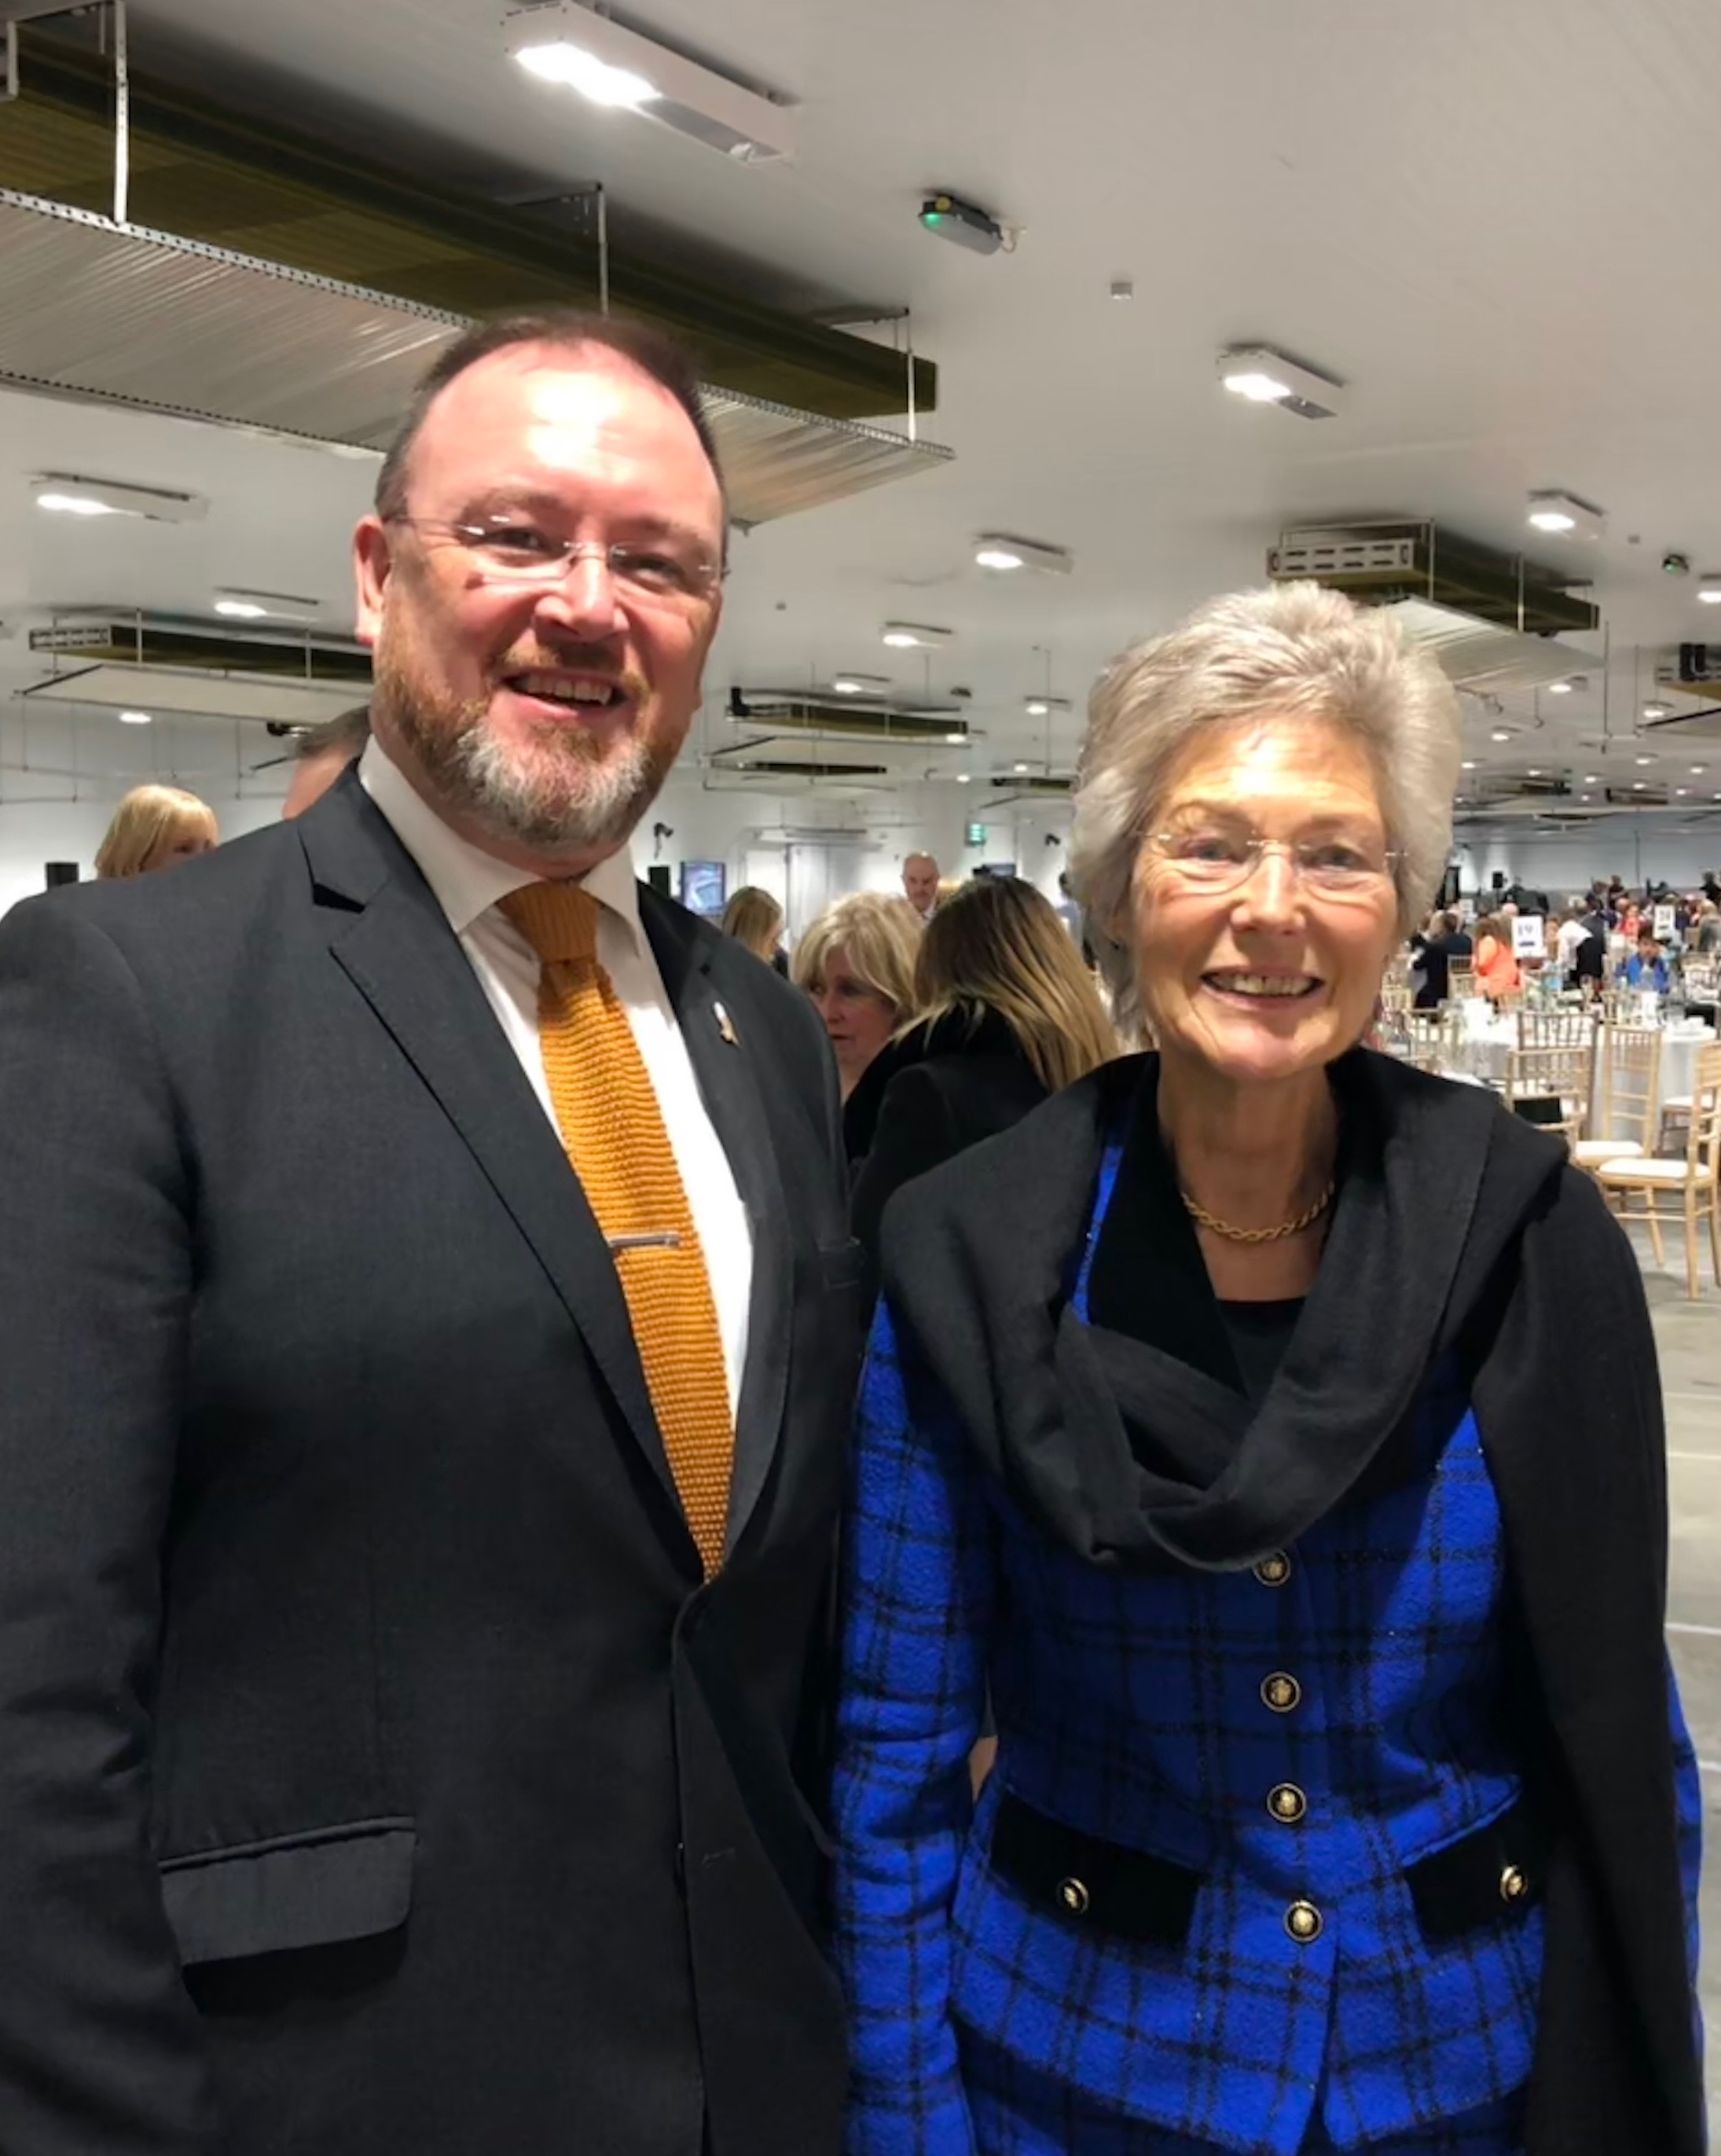 David Duguid MP with Lady McQuarrie at the opening of the new Peterhead fish market earlier this year